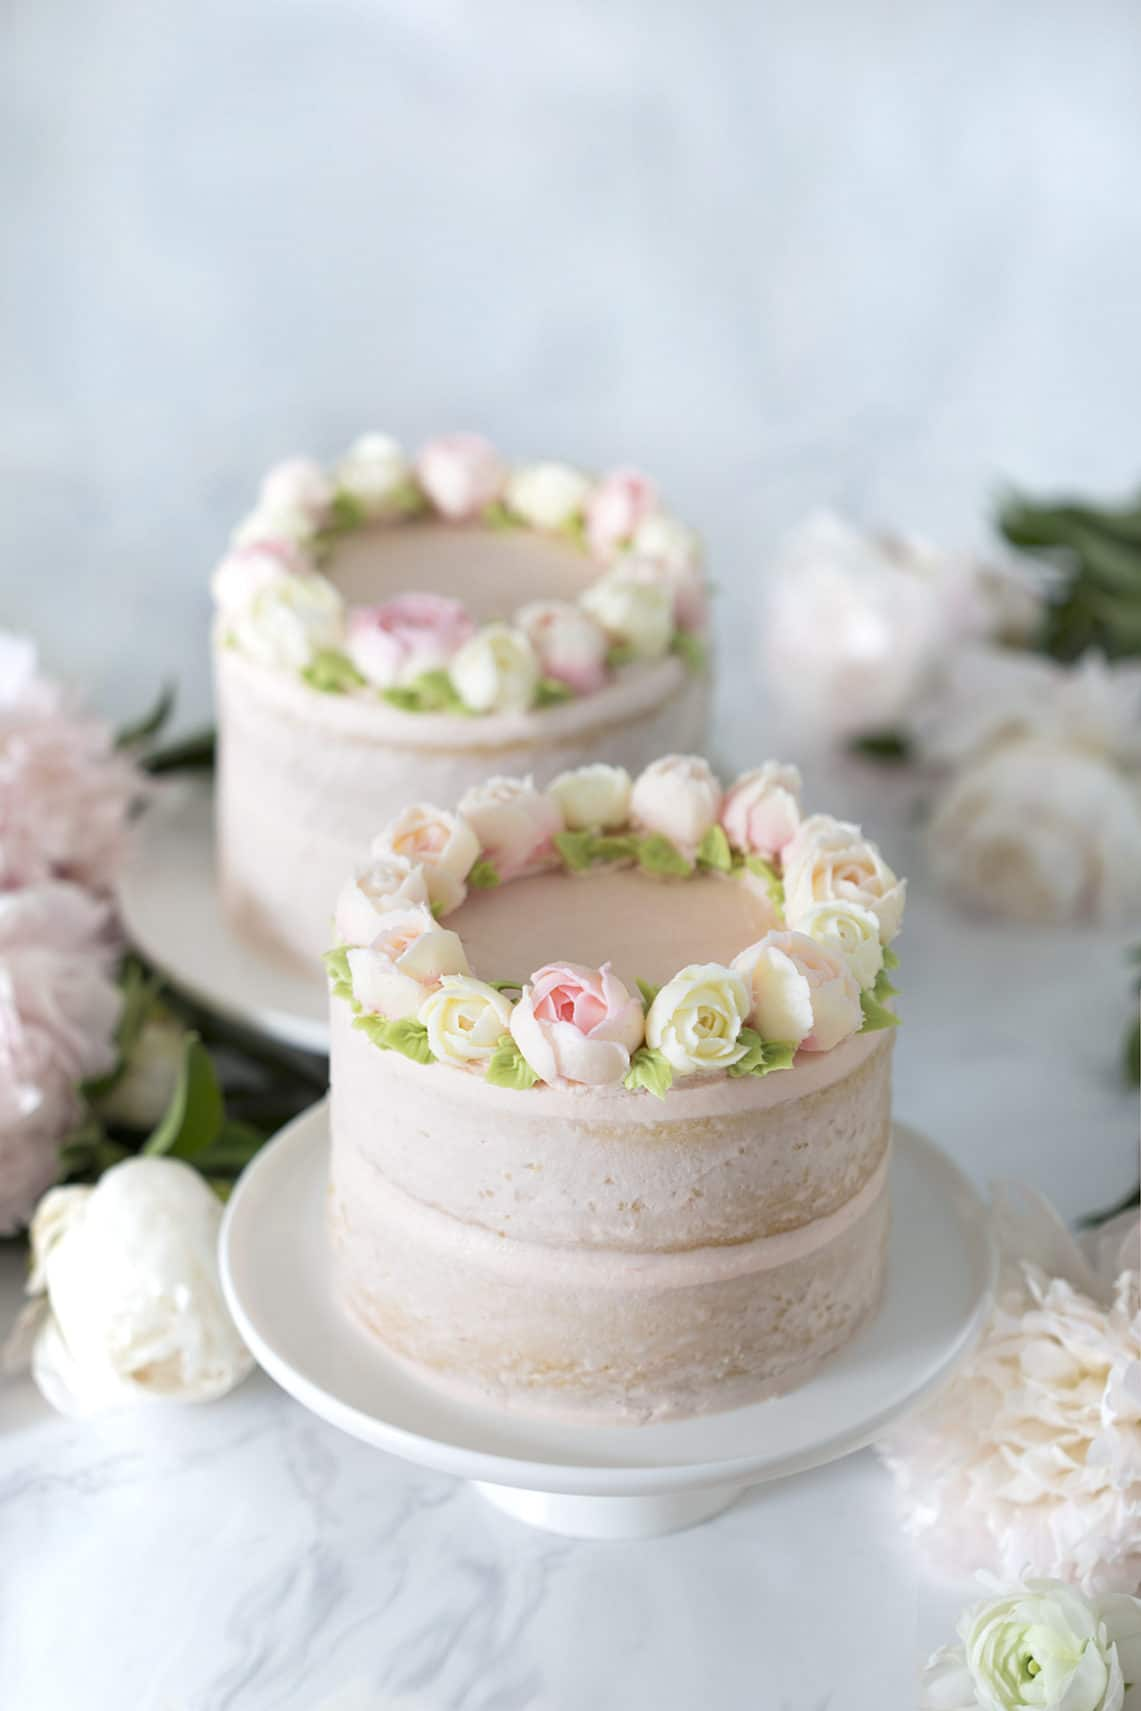 photo of two Smash Cakes on a table with flowers